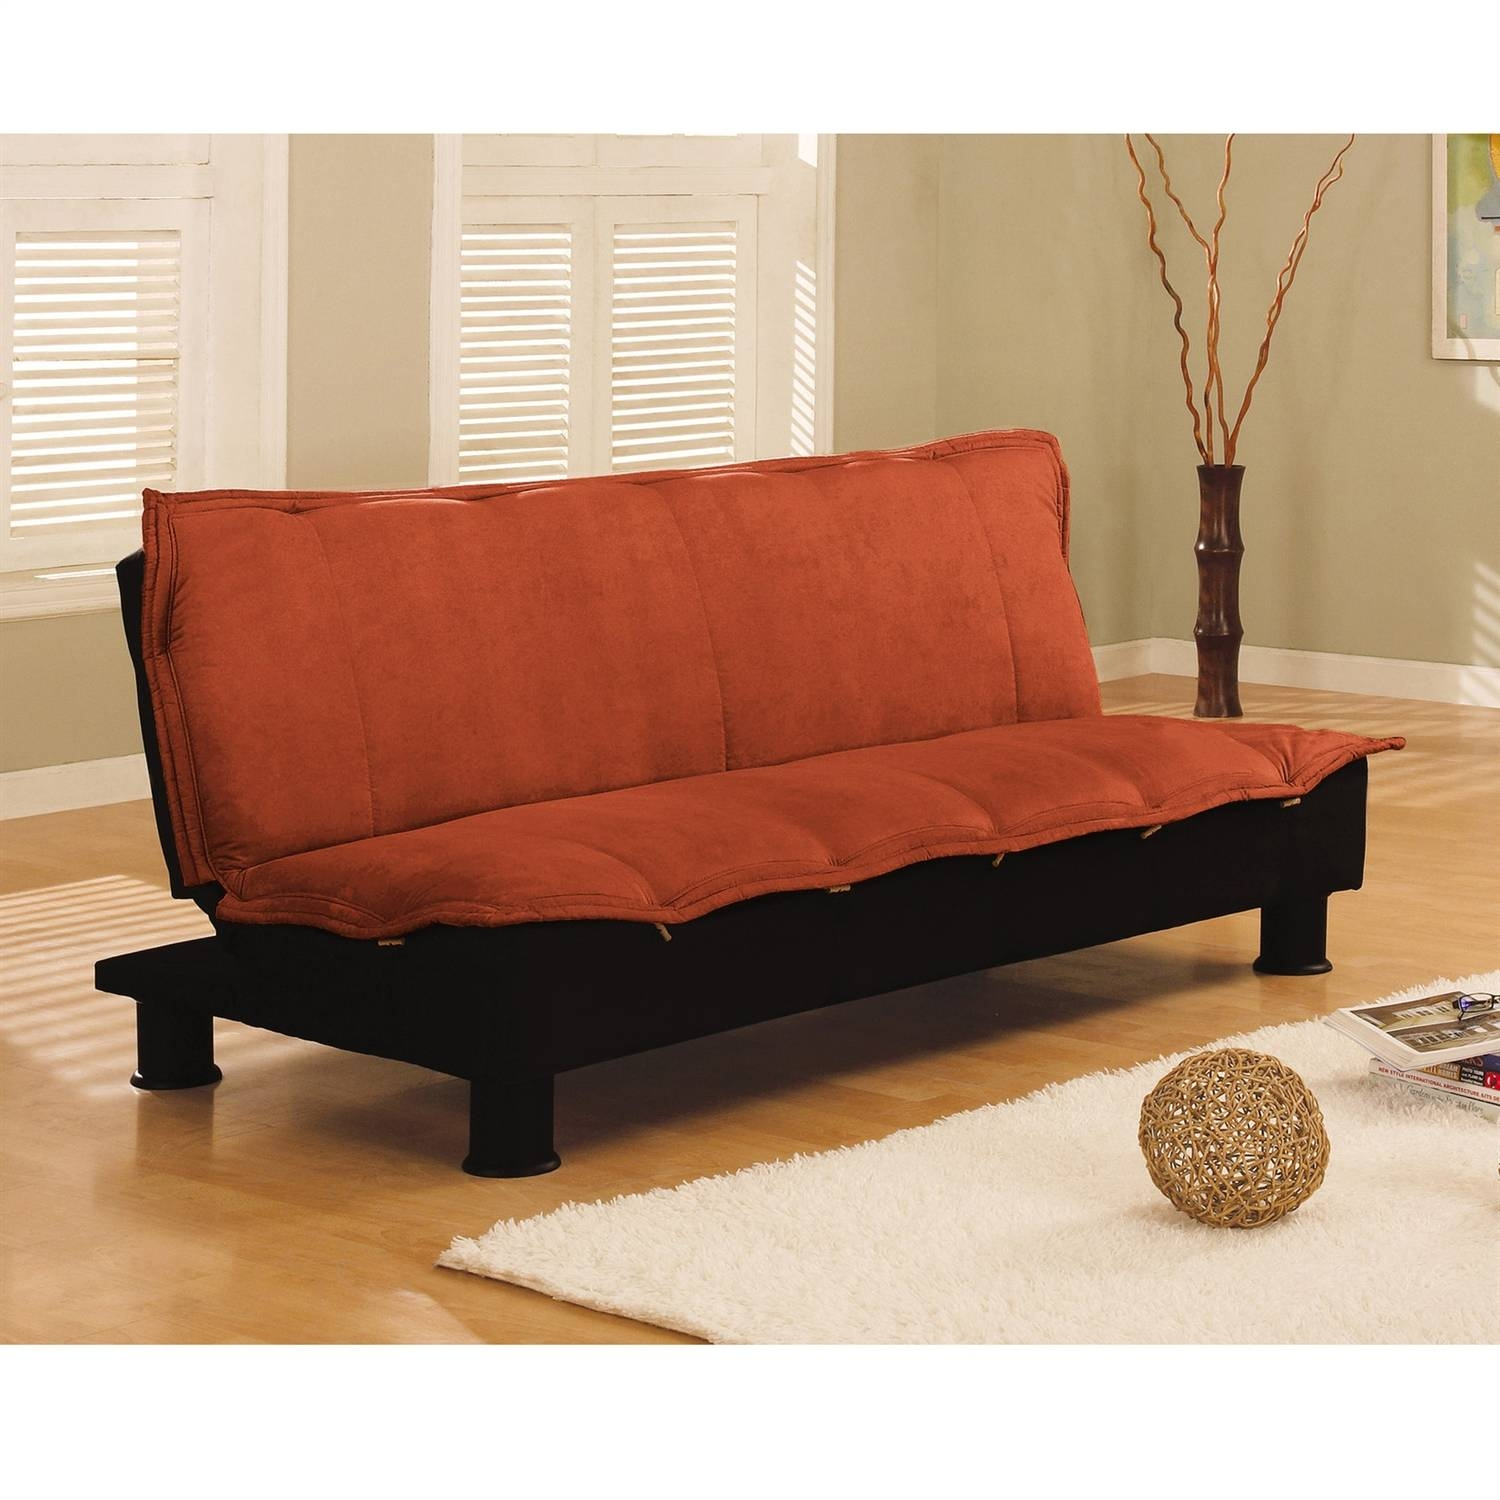 Futon Sofa Bed Click Clack | Centerfieldbar within Faux Leather Futon Sofas (Image 10 of 15)